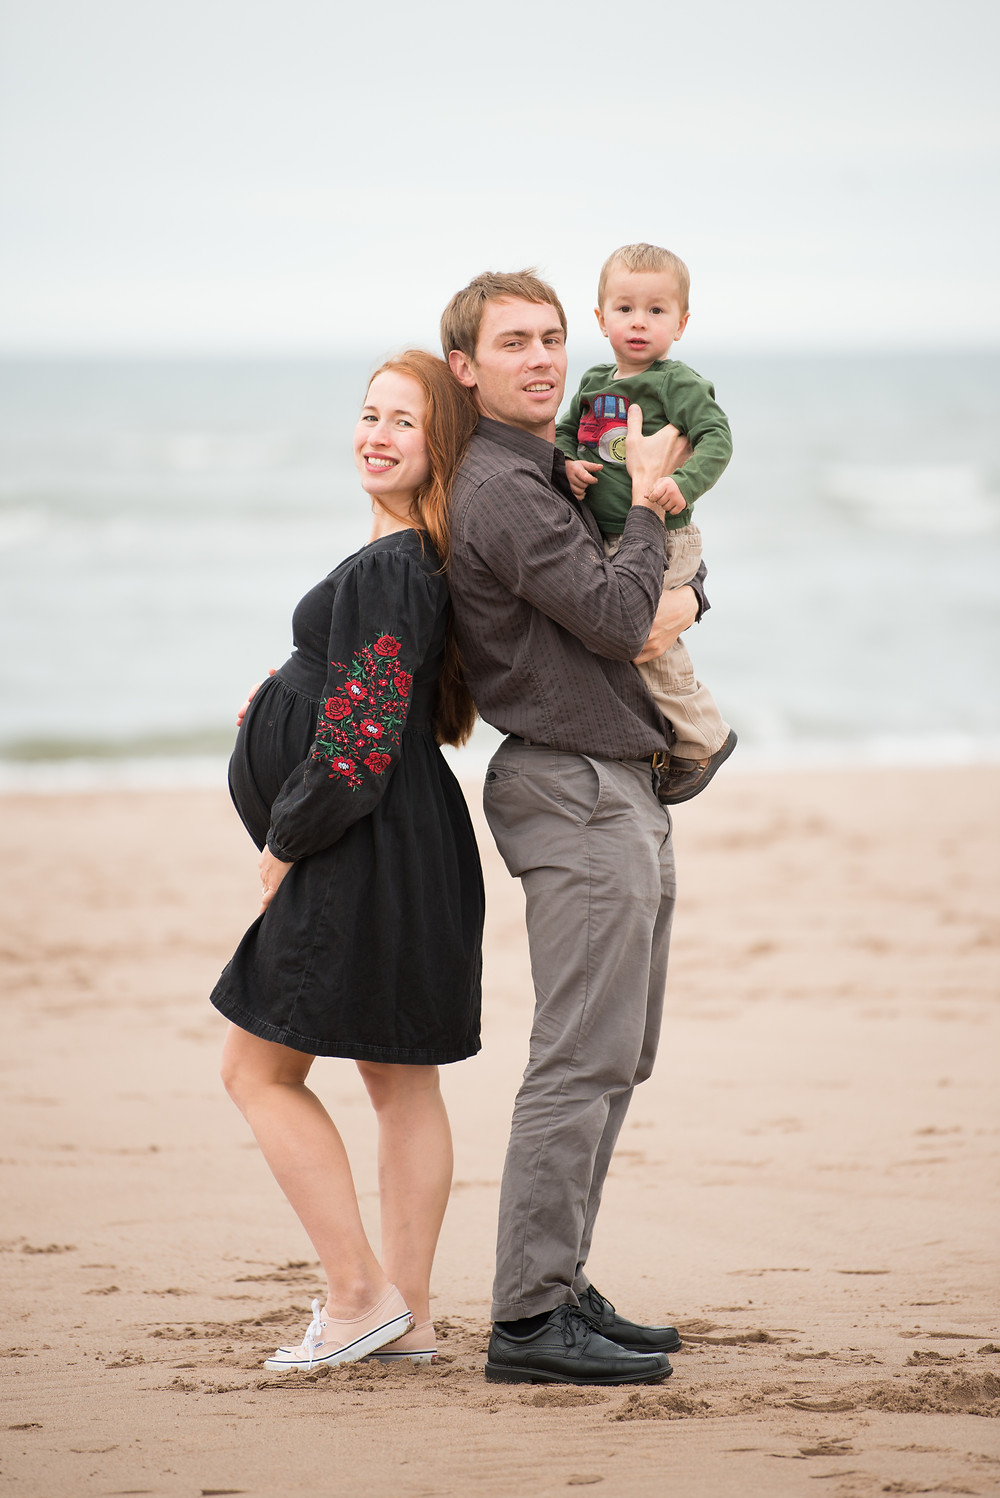 Best-aberdeen-family-children-photographer-montrose-arbroath-aberdeenshire-beach-outdoors-maternity-toddler-boy-st-cyrus